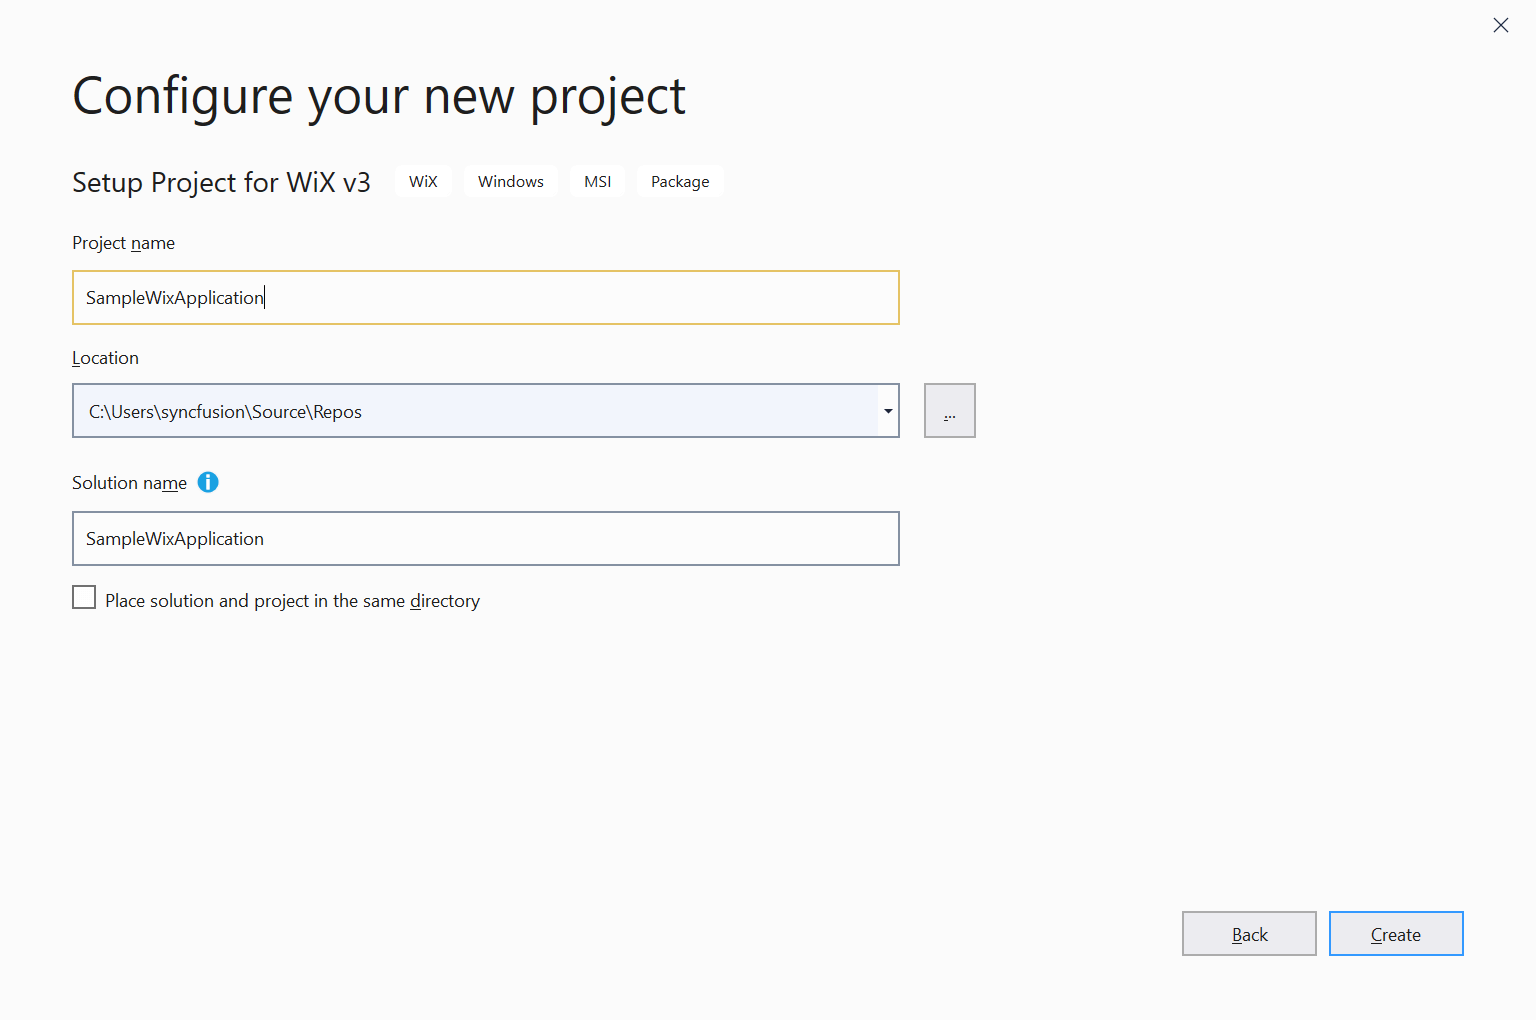 Configure a new project